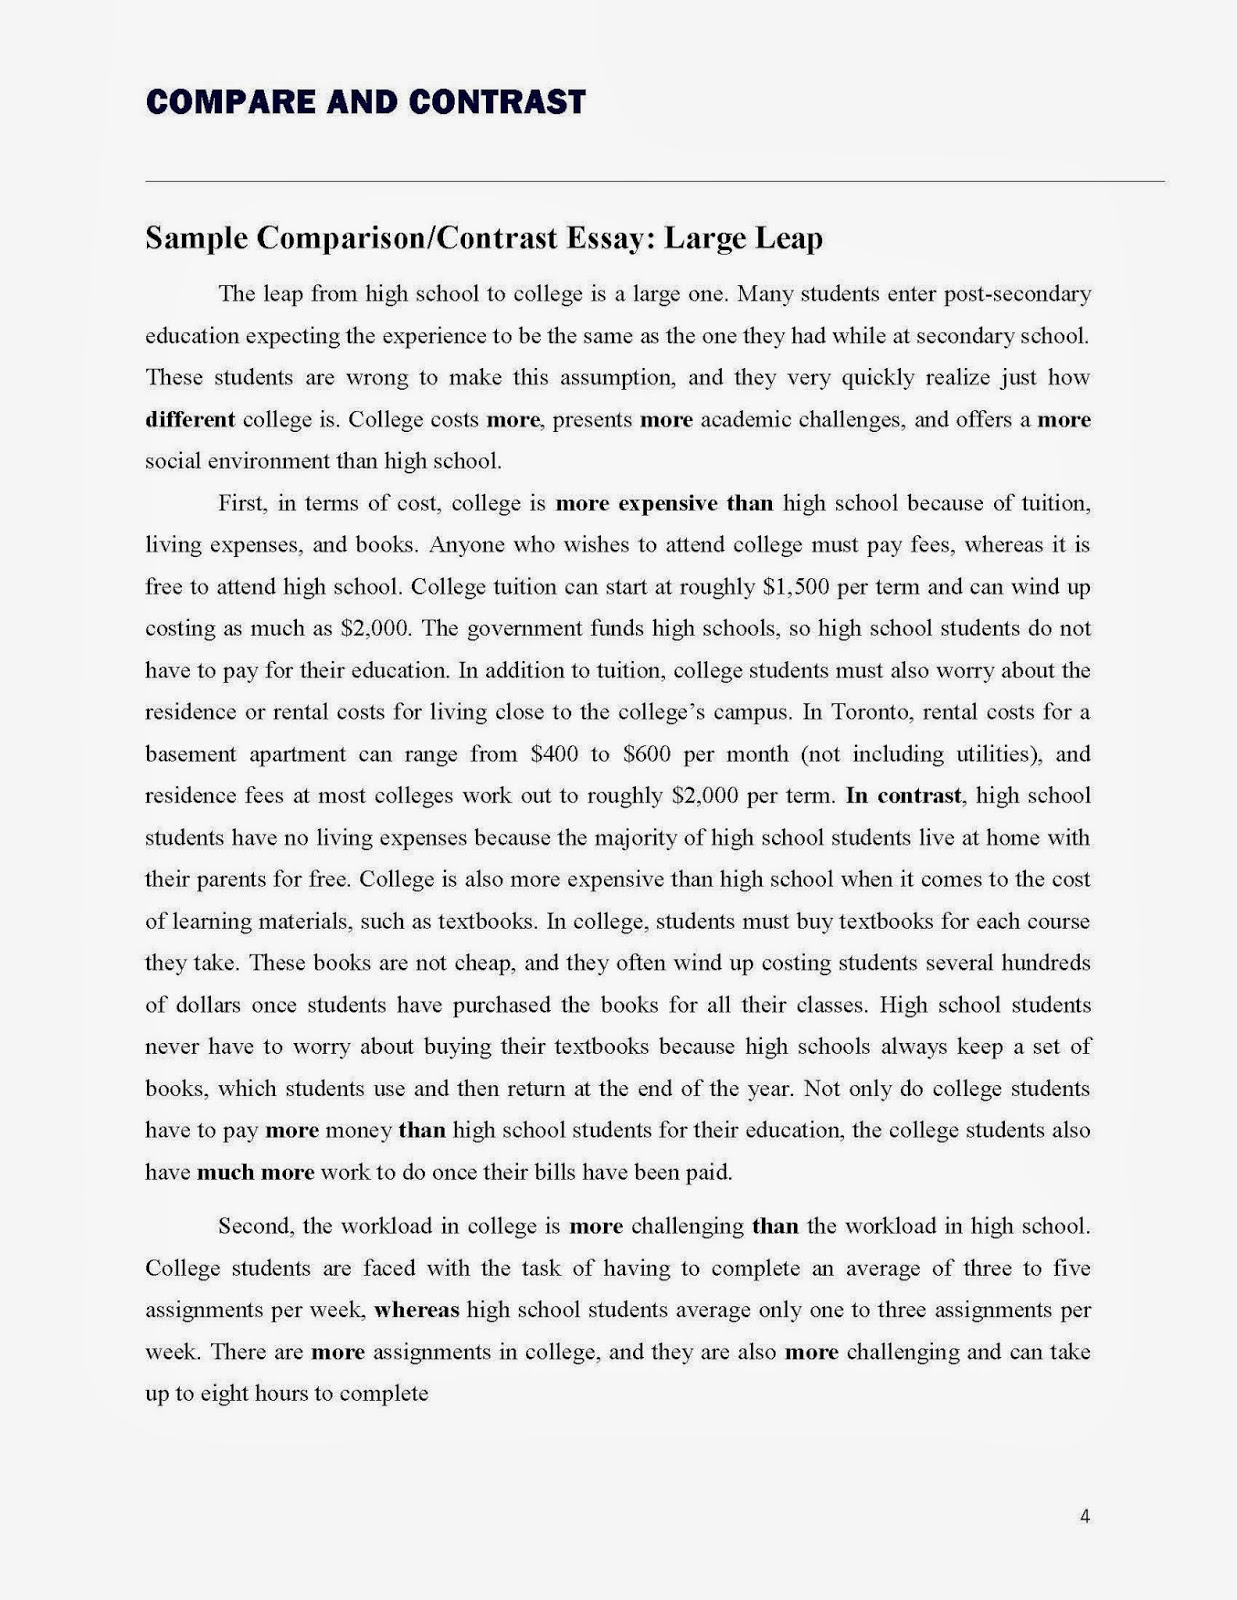 Literary analysis comparison contrast essay